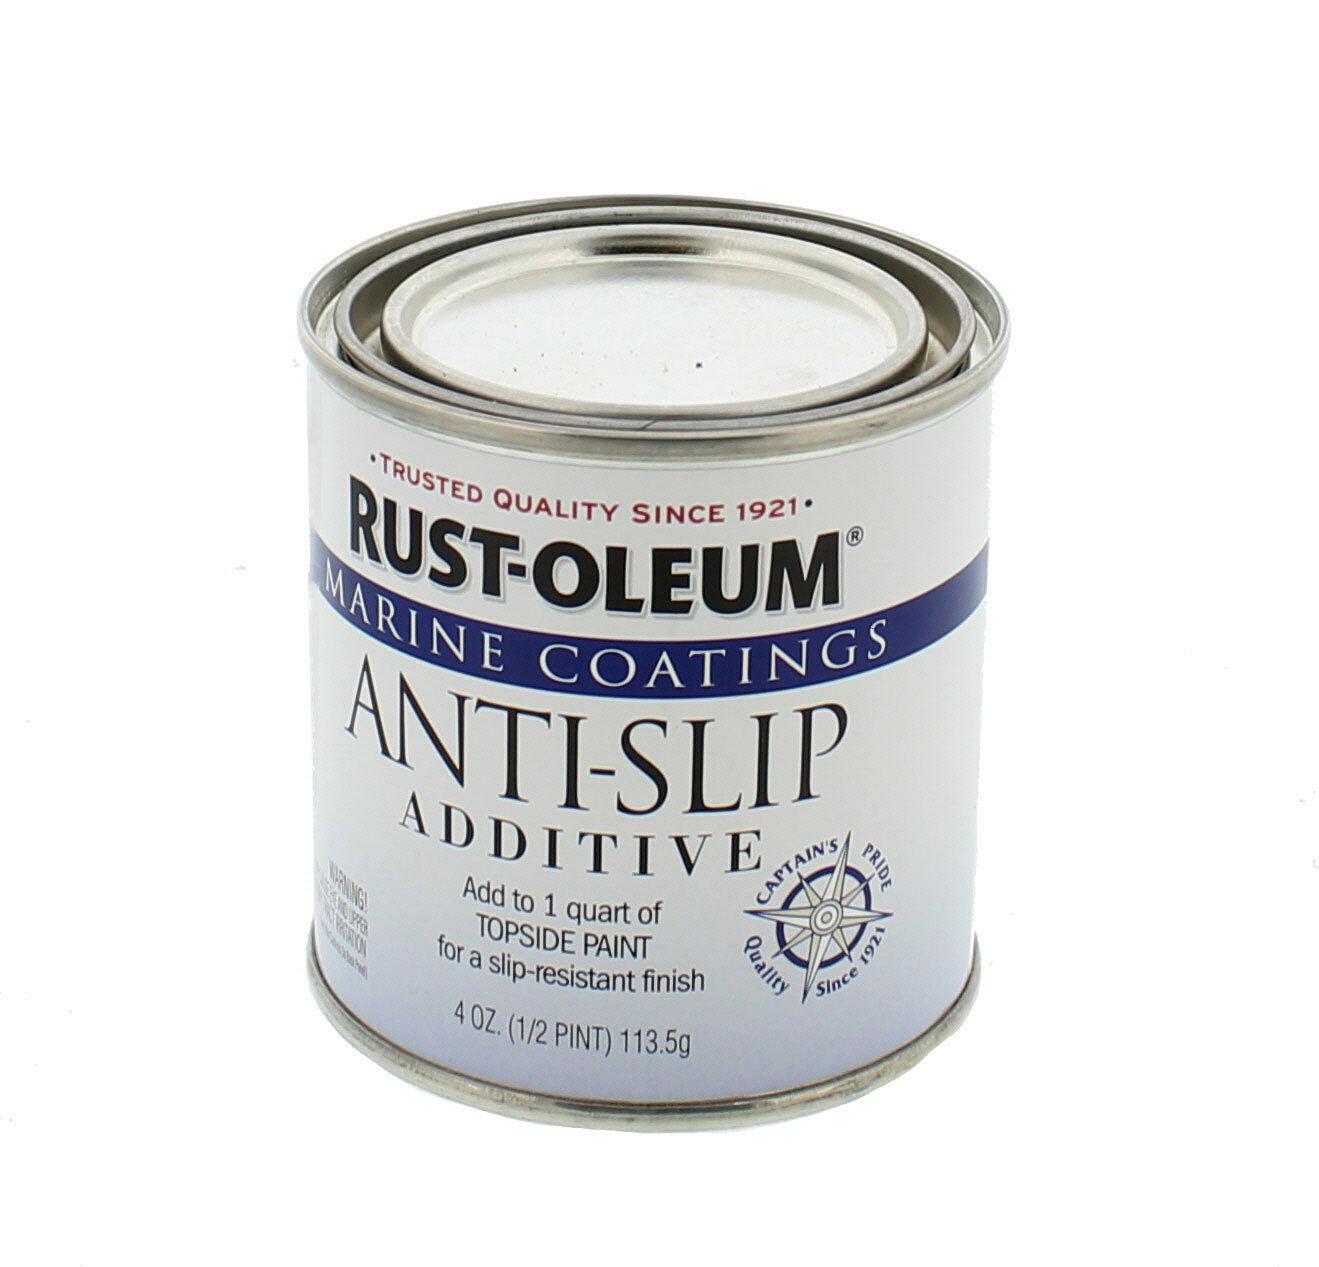 Rust-Oleum 207009 Marine Anti-slip Additive 1 2-pint | eBay